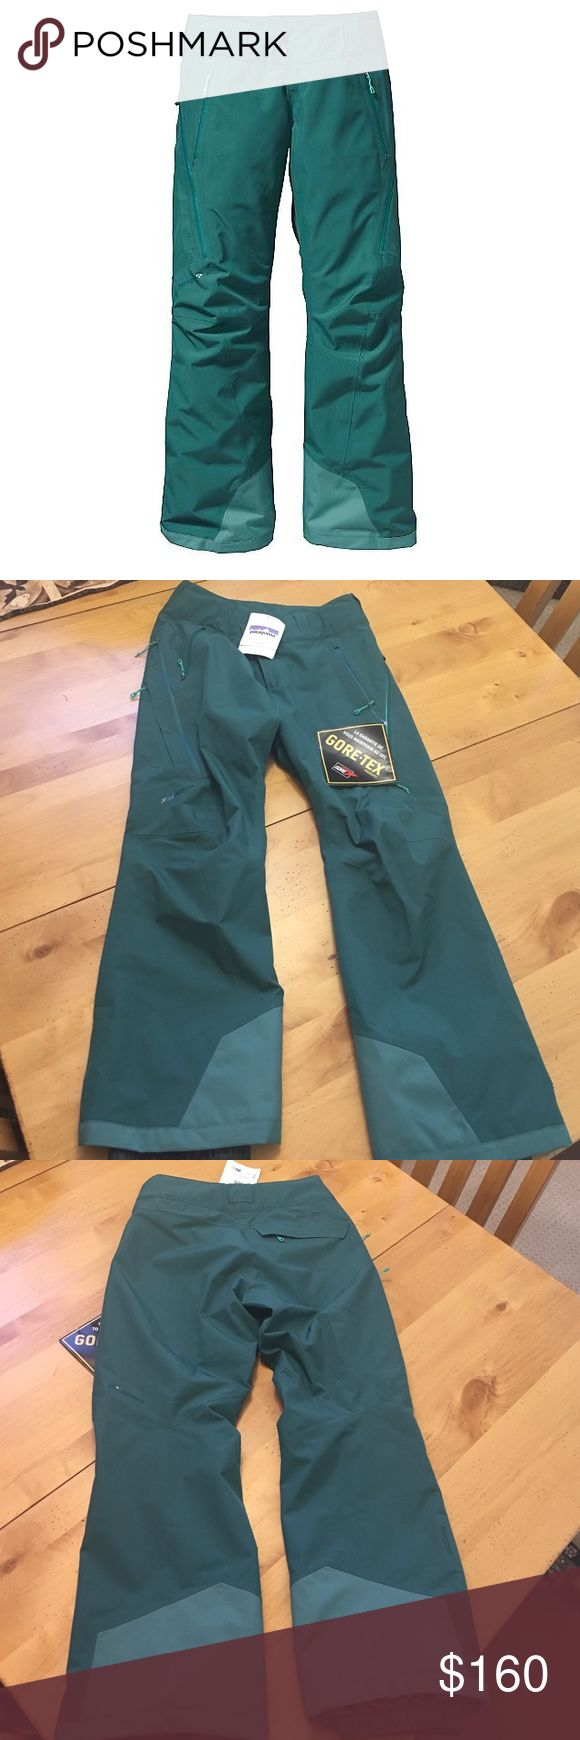 NWT Patagonia ski pants Patagonia Powderbowl Pant. Brand new, tags on. Women's medium, Arbor Green. Bought at the Patagonia outlet and never wore them. Make an offer! Patagonia Pants